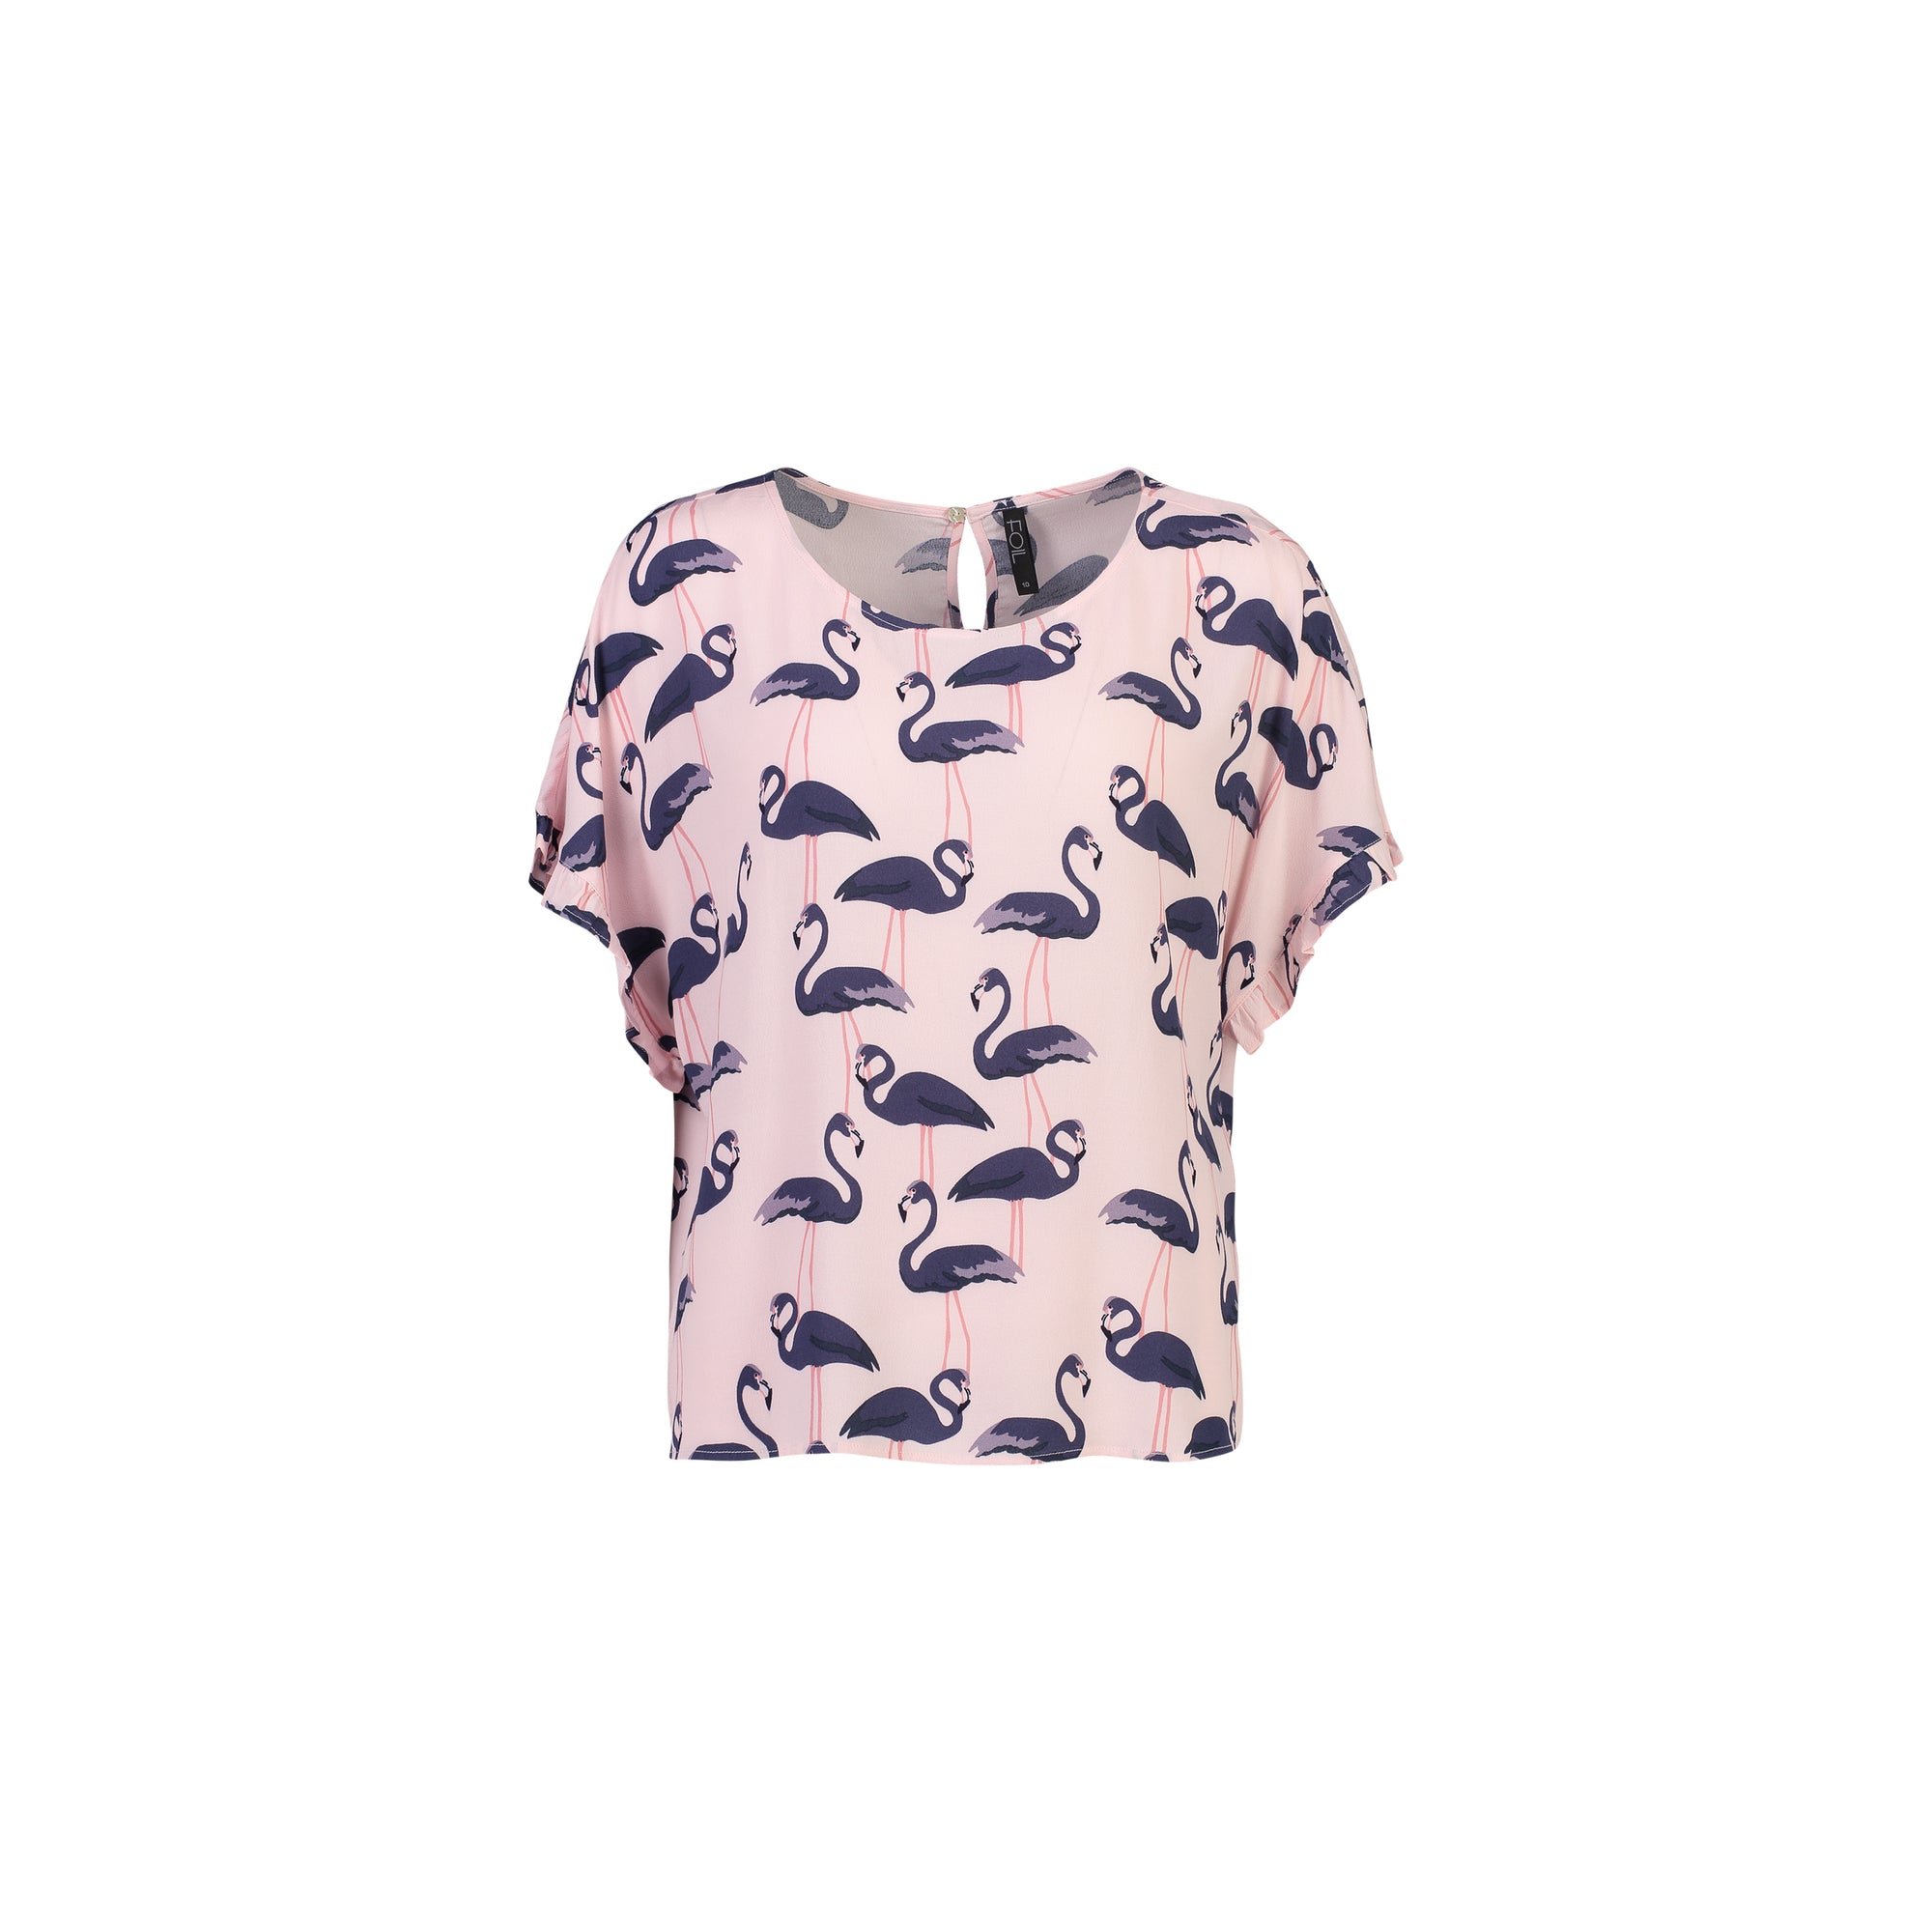 Foil Pretty Easy Frill Top in Pink Flamingo